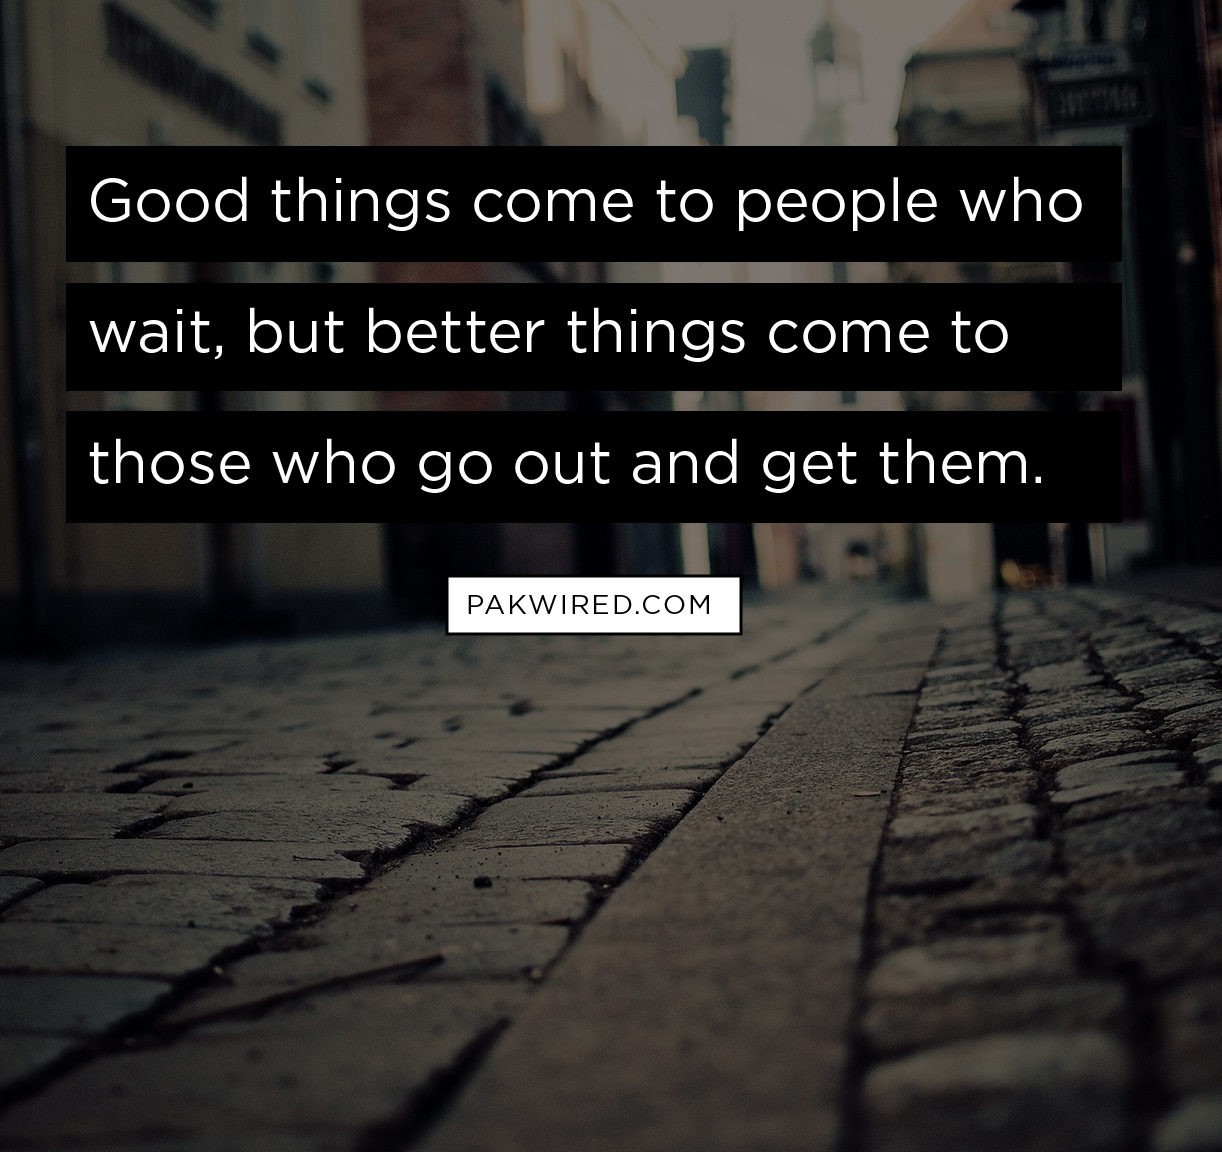 Good things come to people who wait, but better things come to those who go out and get them-01